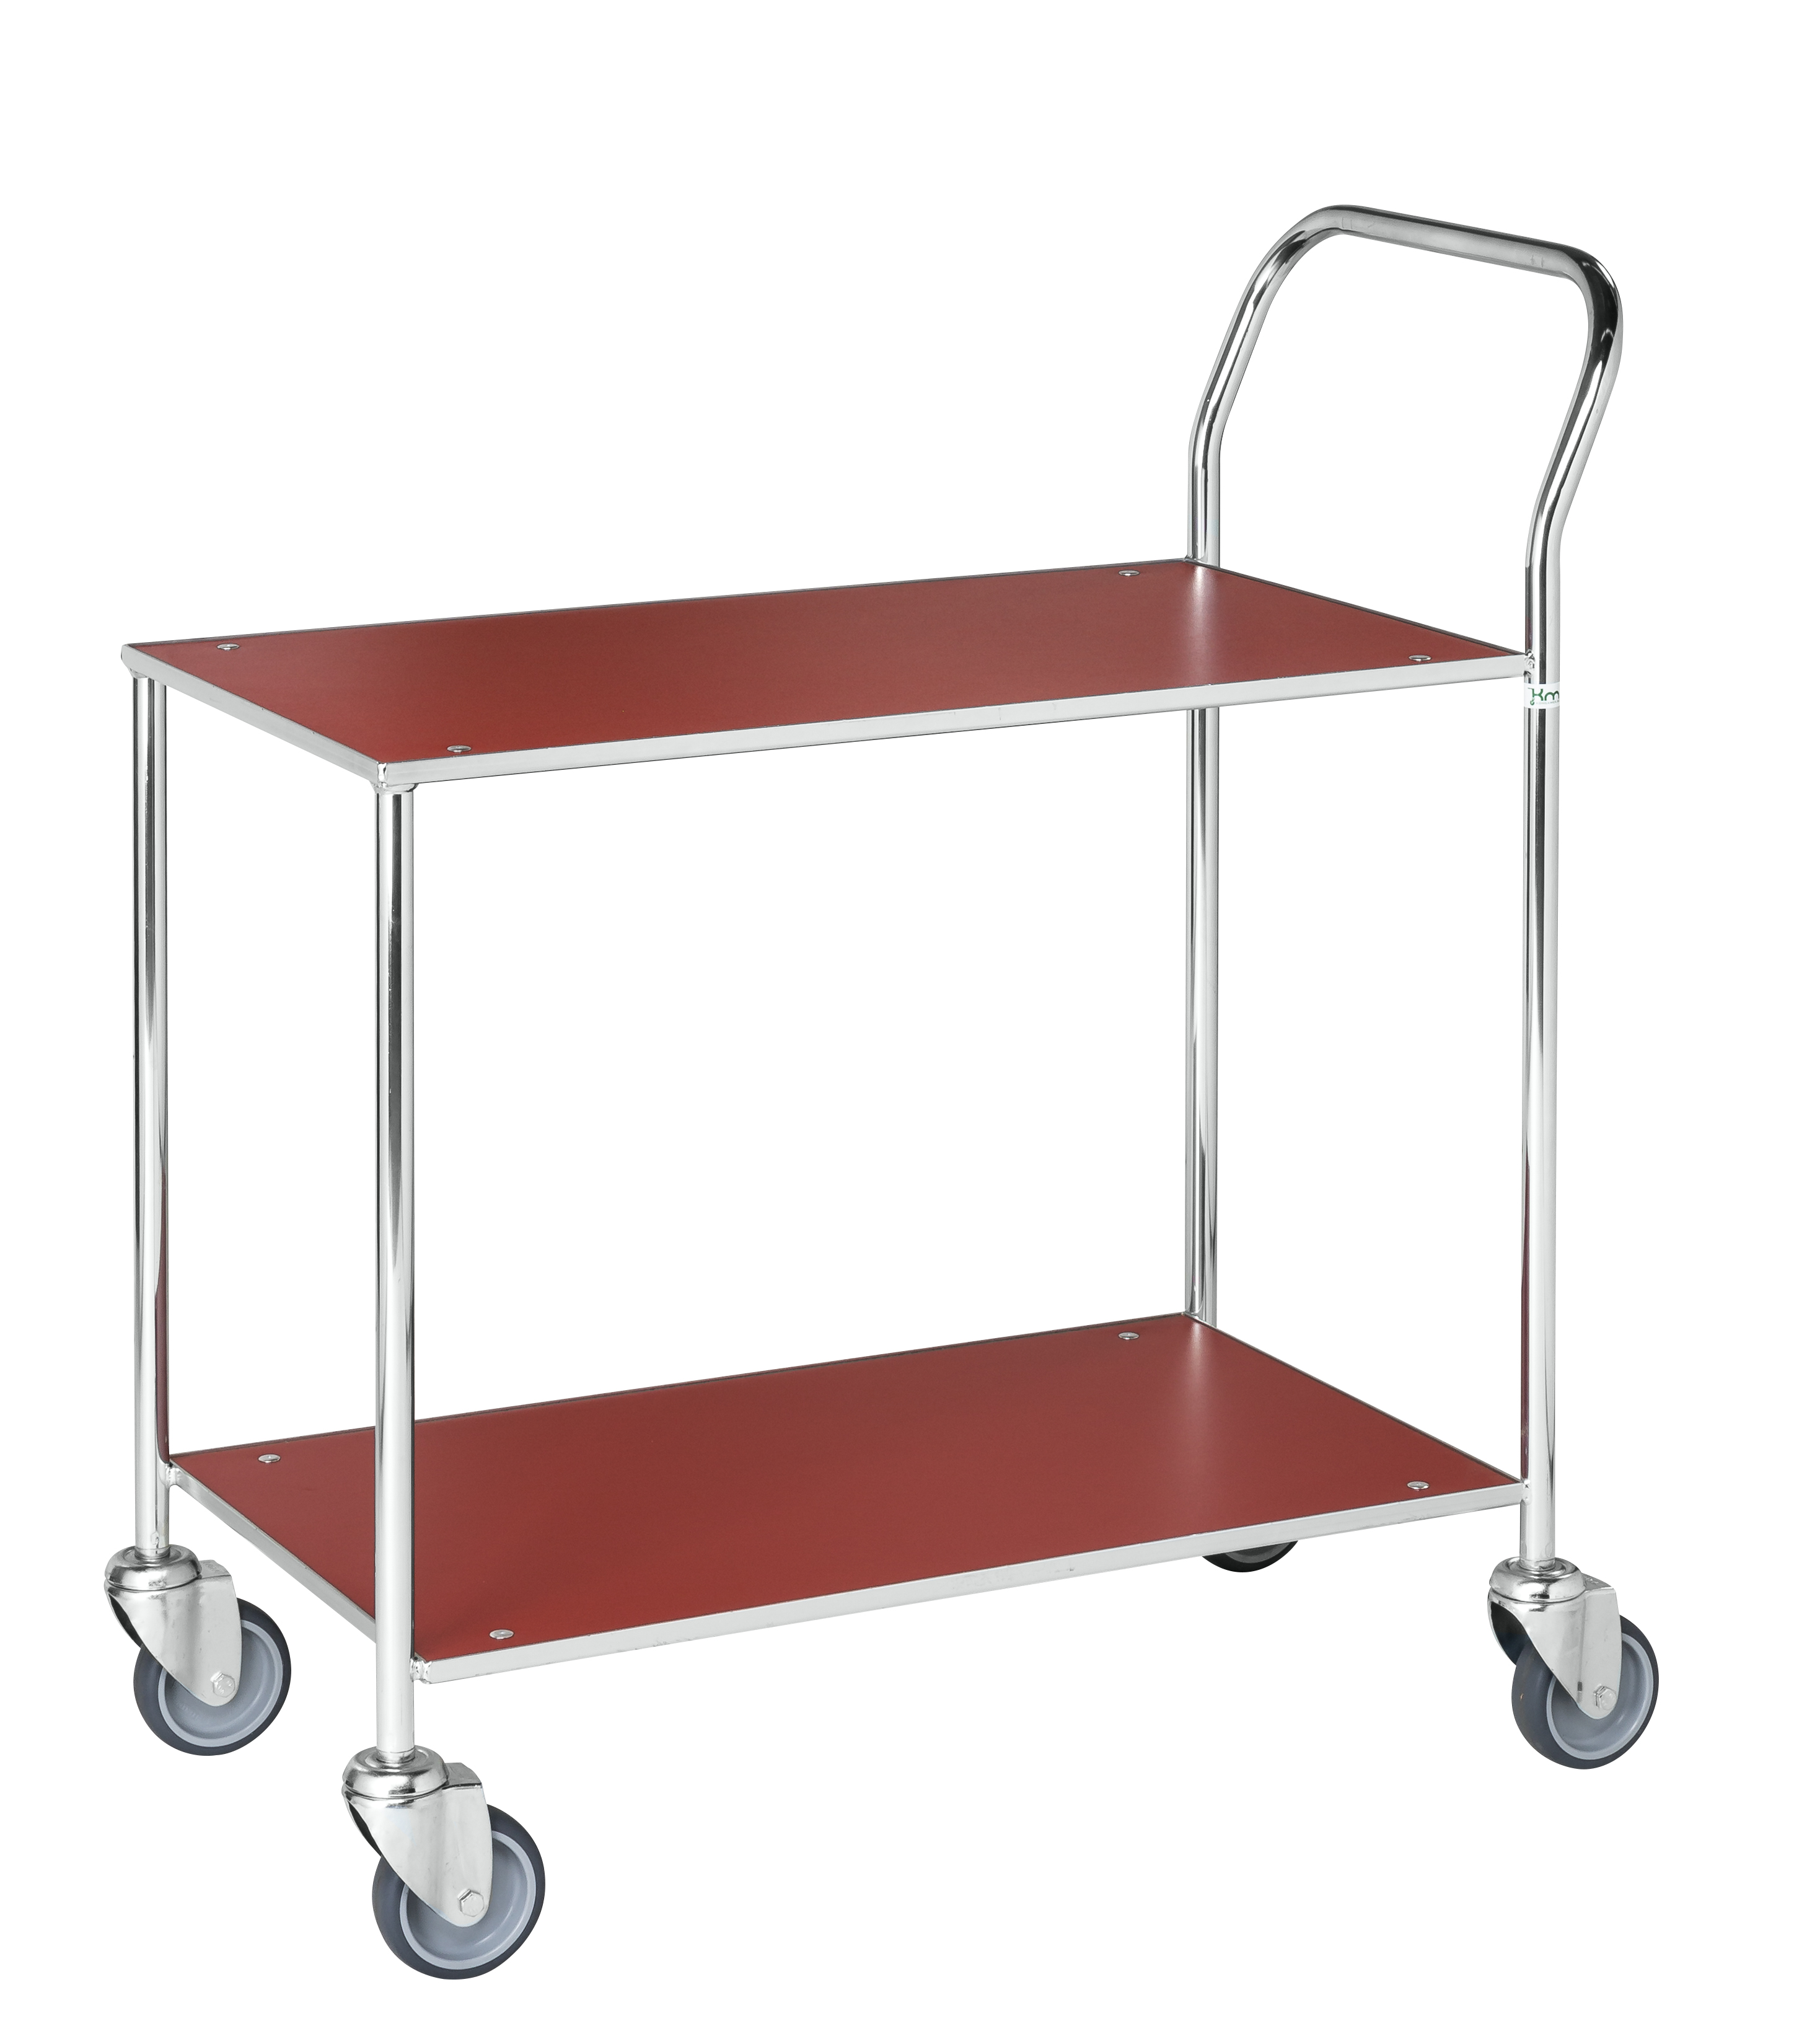 KM172-1 | Small table trolley, fully welded